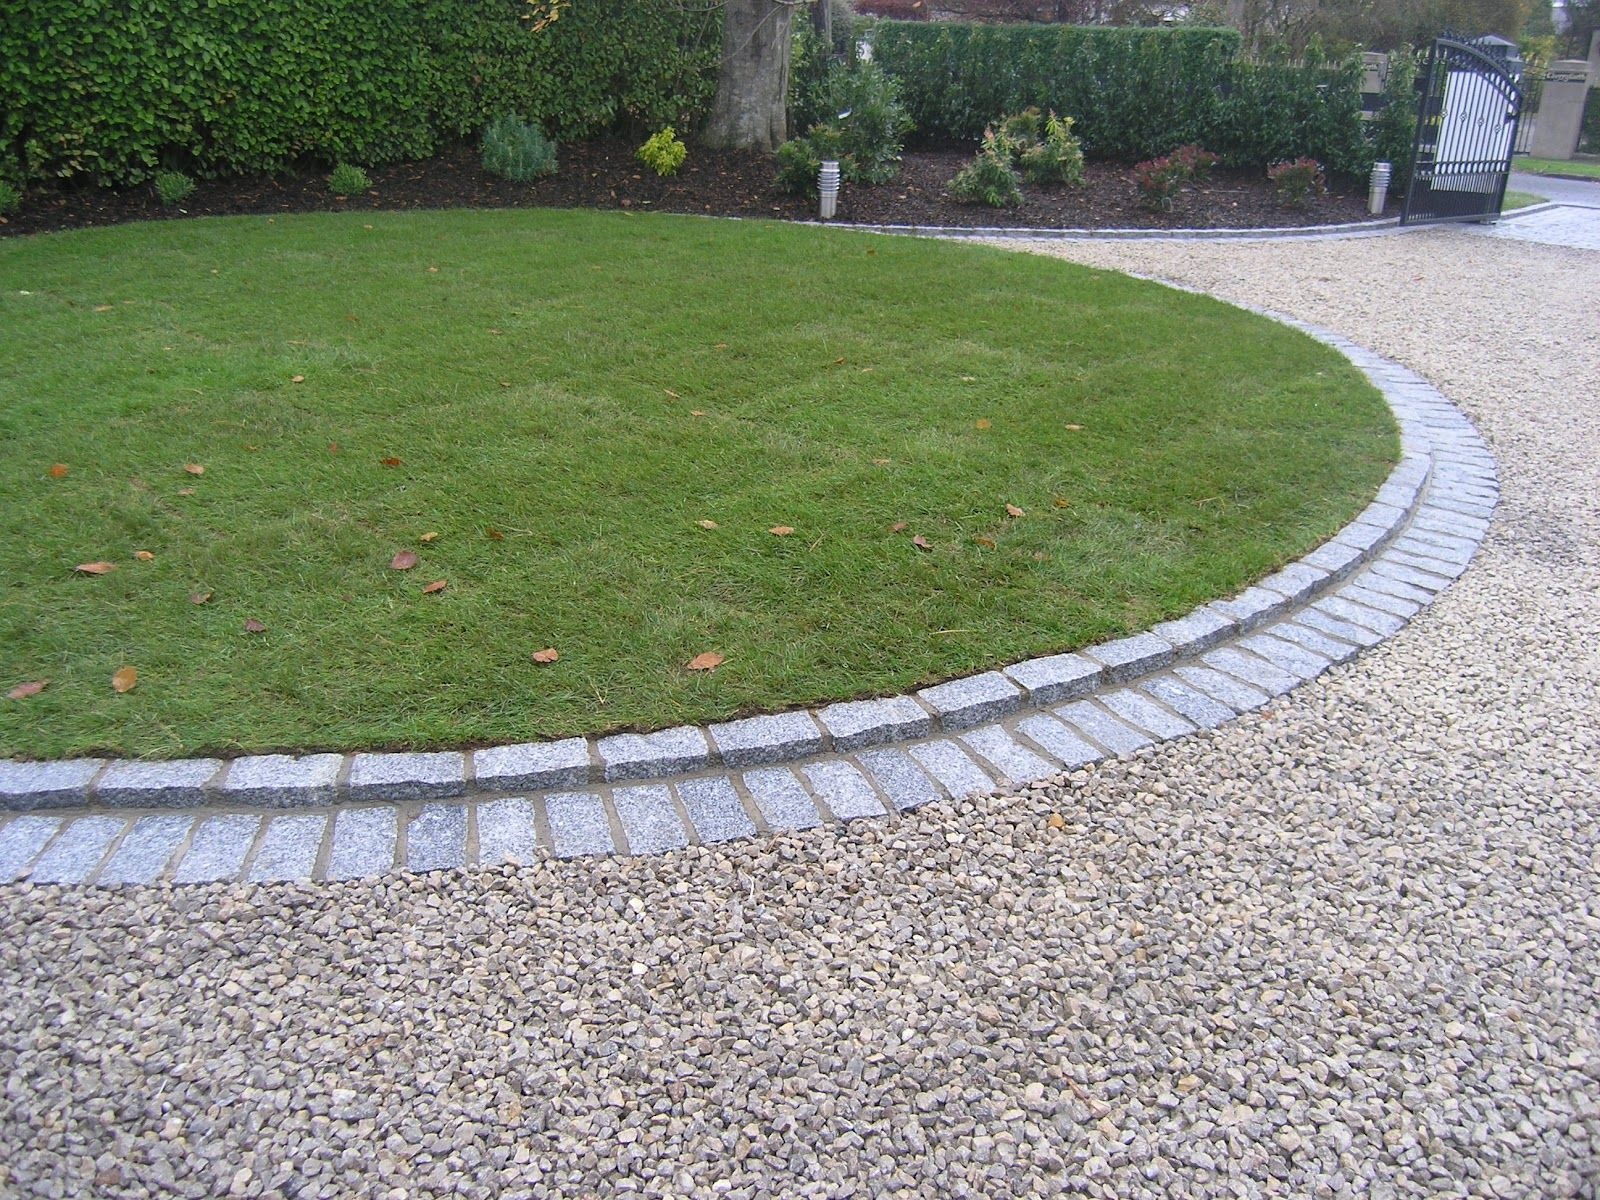 Cobblestone And Loose Stone Driveway Stones Seem Large Enough That They Will Not Move Much Love The Look Another Option Would Be To Replace